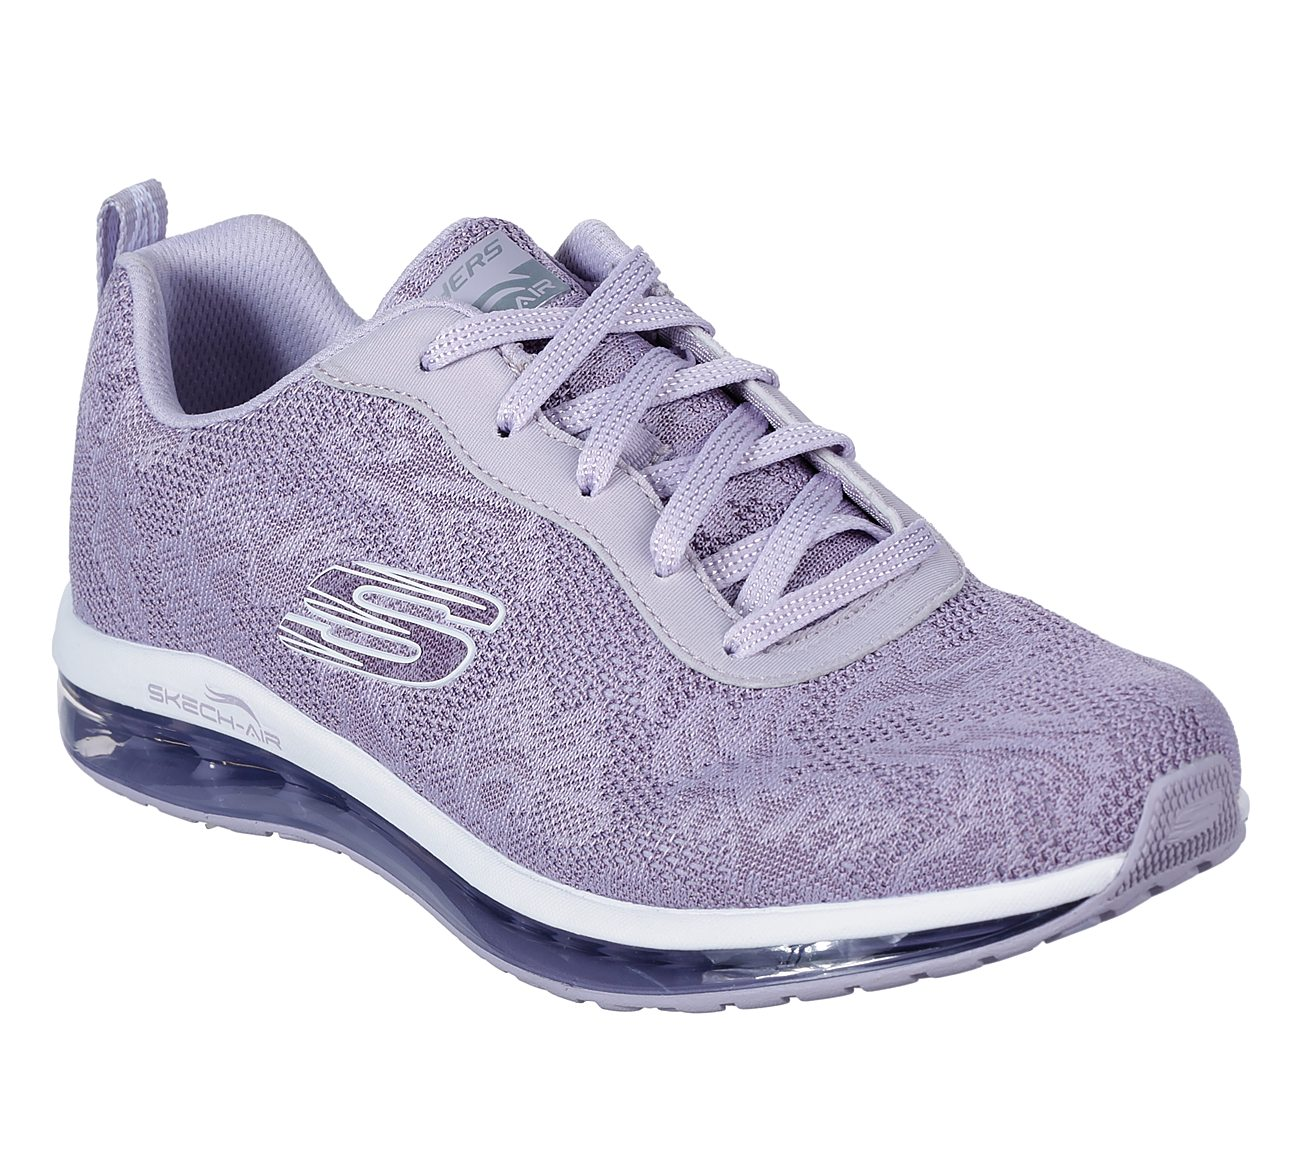 Women's Skech-Air Extreme - Walkout